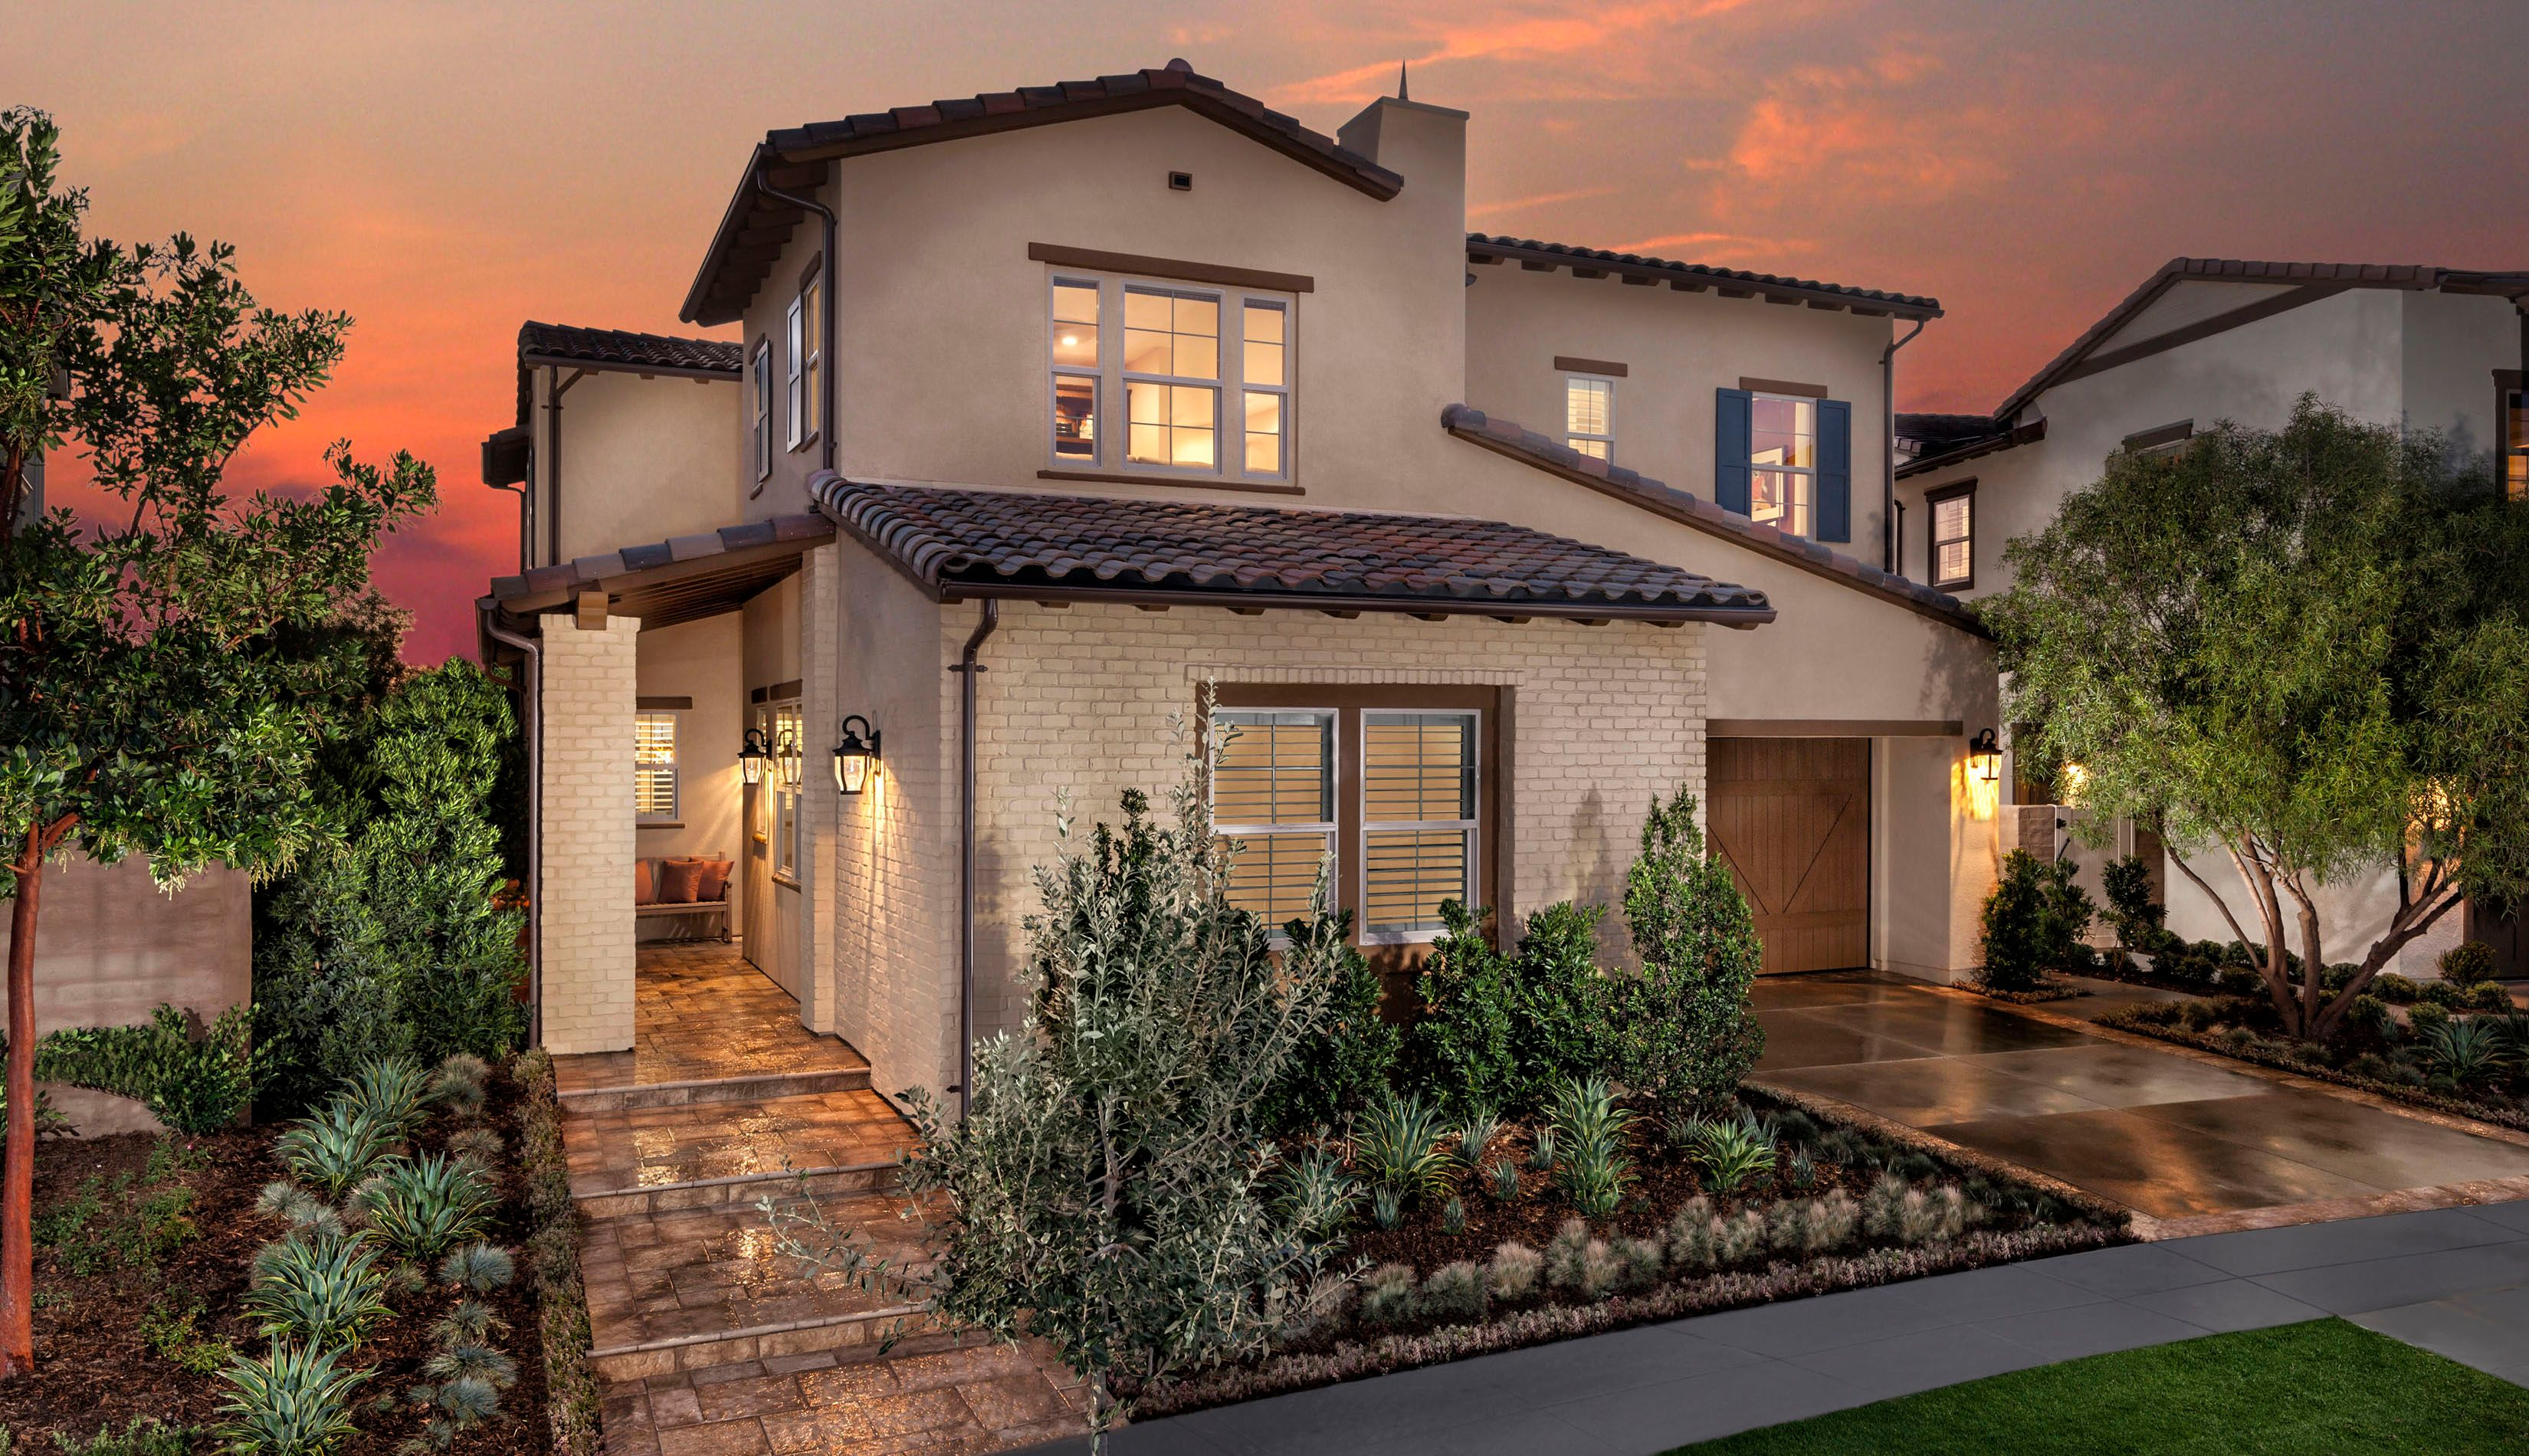 Single Family for Sale at Aubergine At Esencia - Residence 2 8 Cadencia Street Ladera Ranch, California 92694 United States